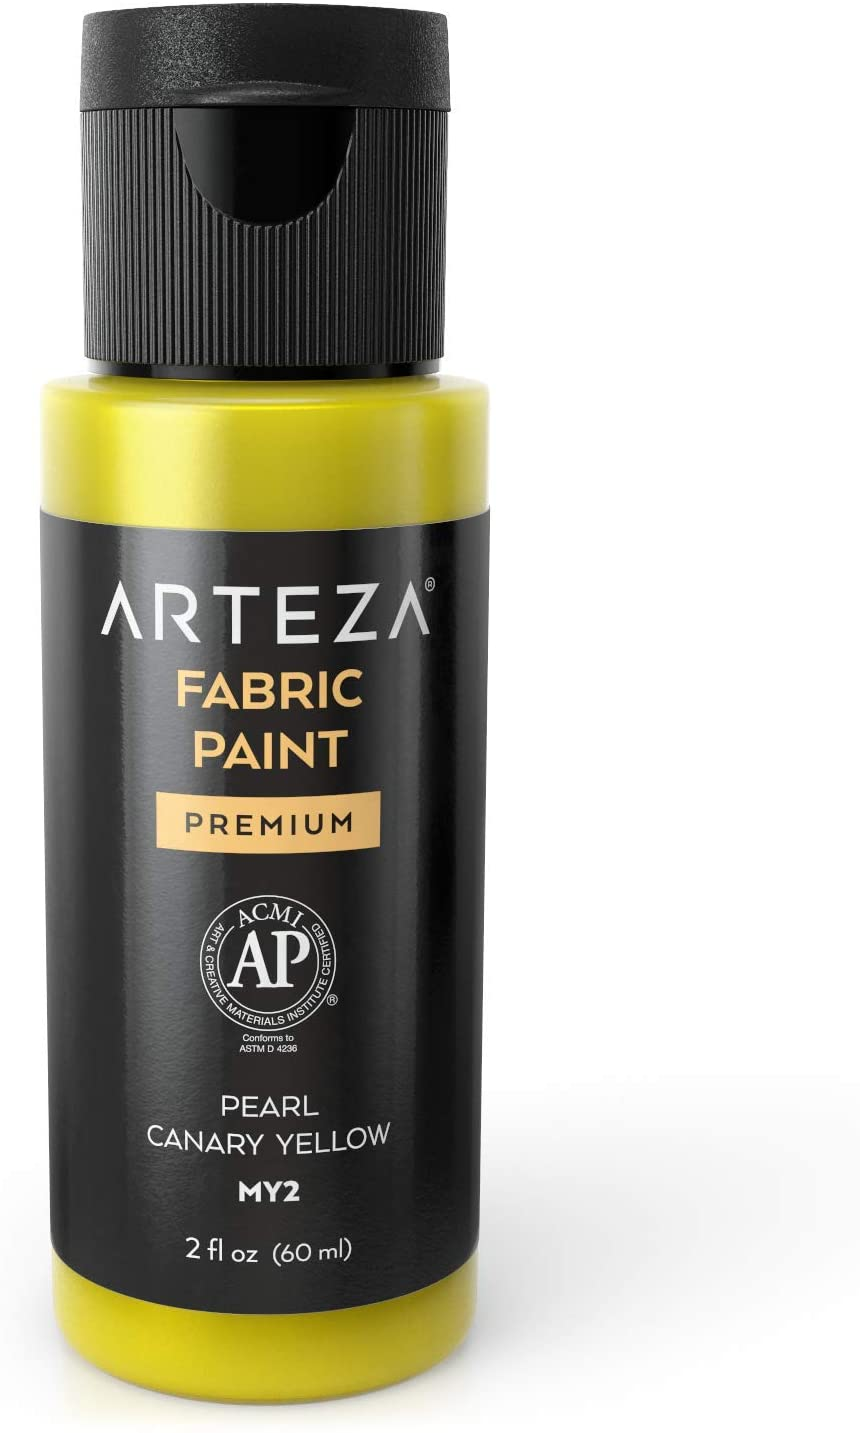 Arteza Permanent Fabric Paint MY2 Pearl Canary Yellow, 60 ml Bottle, Washer & Dryer Safe, Textile Paint for Clothes, T-Shirts, Jeans, Bags, Shoes, DIY Projects & Canvas